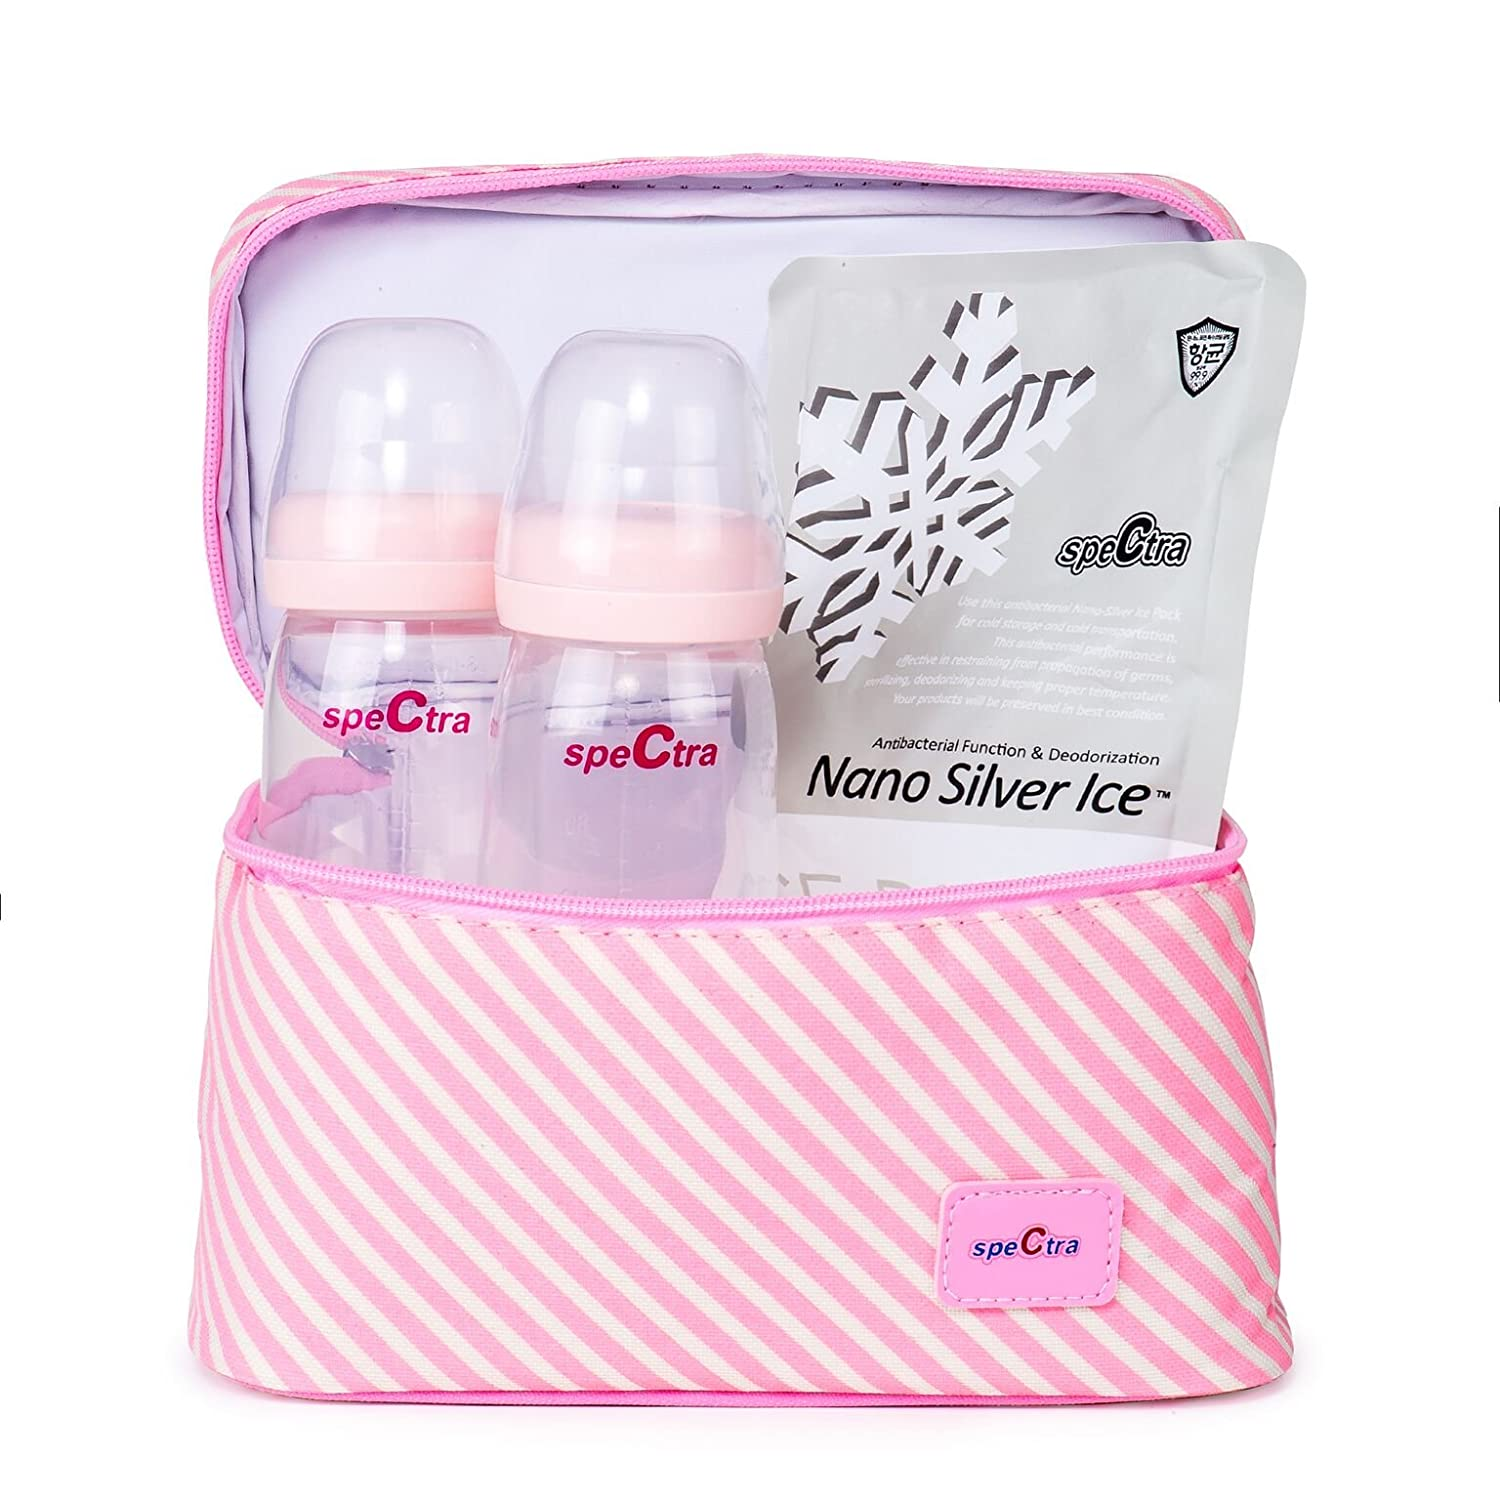 Spectra Baby USA - Pink Cooler Set with Ice Pack and 2 Bottles